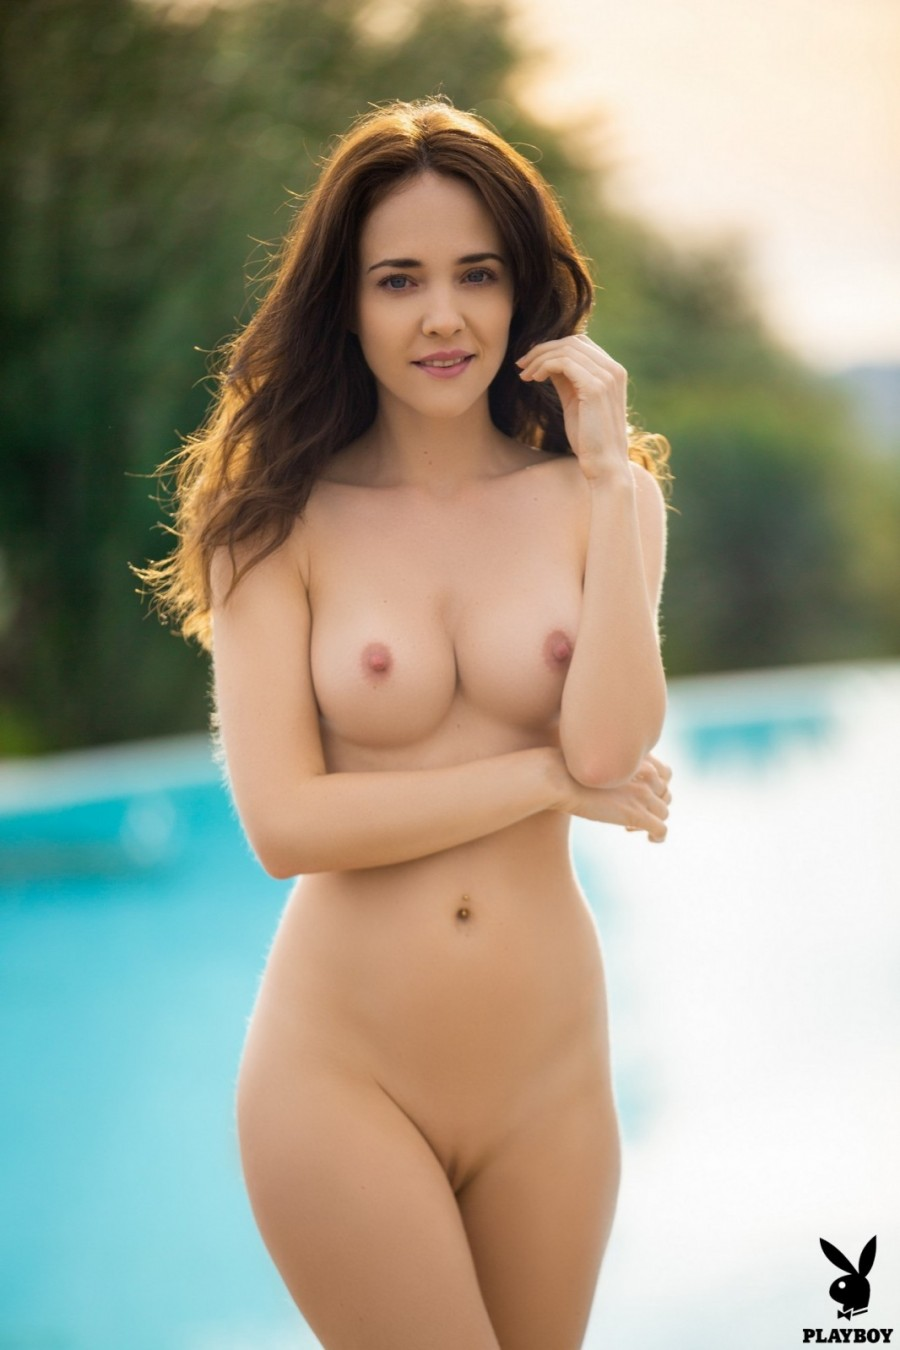 Busty hottie swims naked in pool